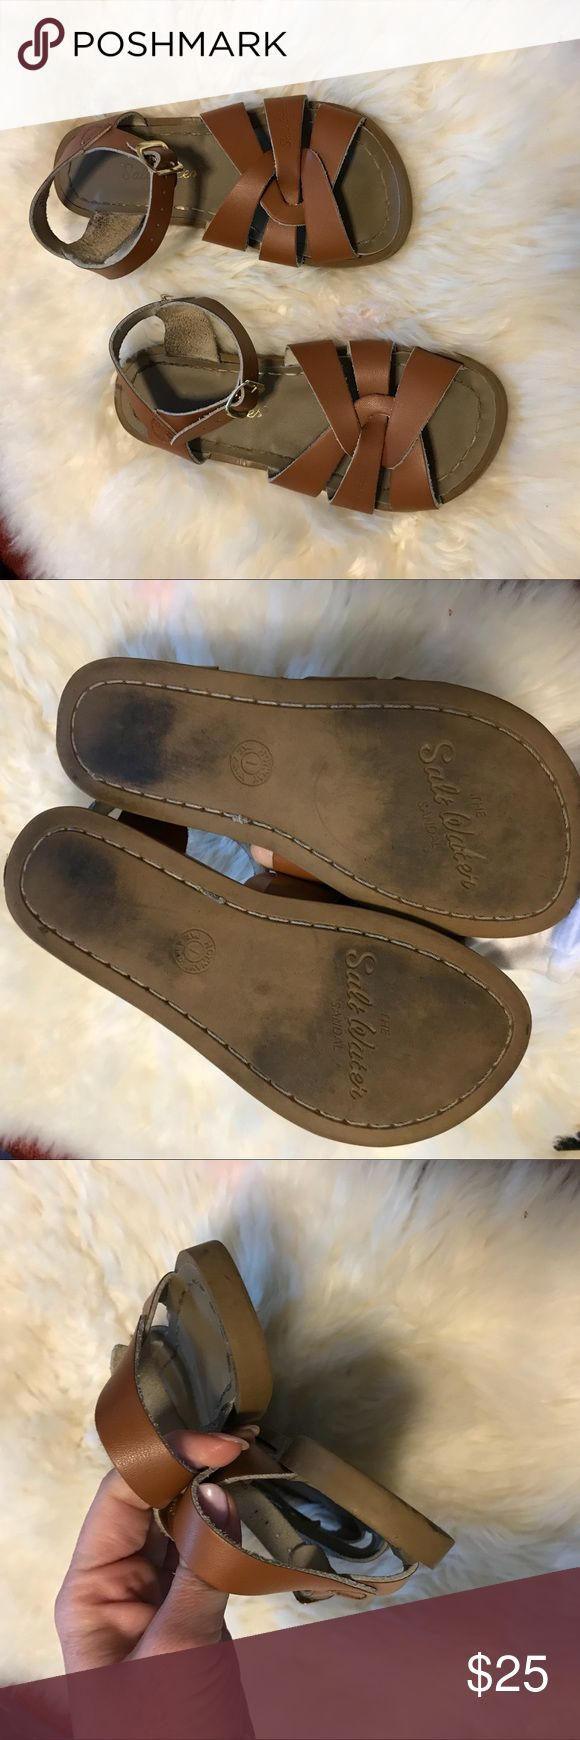 Saltwater Sandals Leather In Camel Brown These are size 1 kids Salt Water Sandals by Hoy Shoes Sandals & Flip Flops